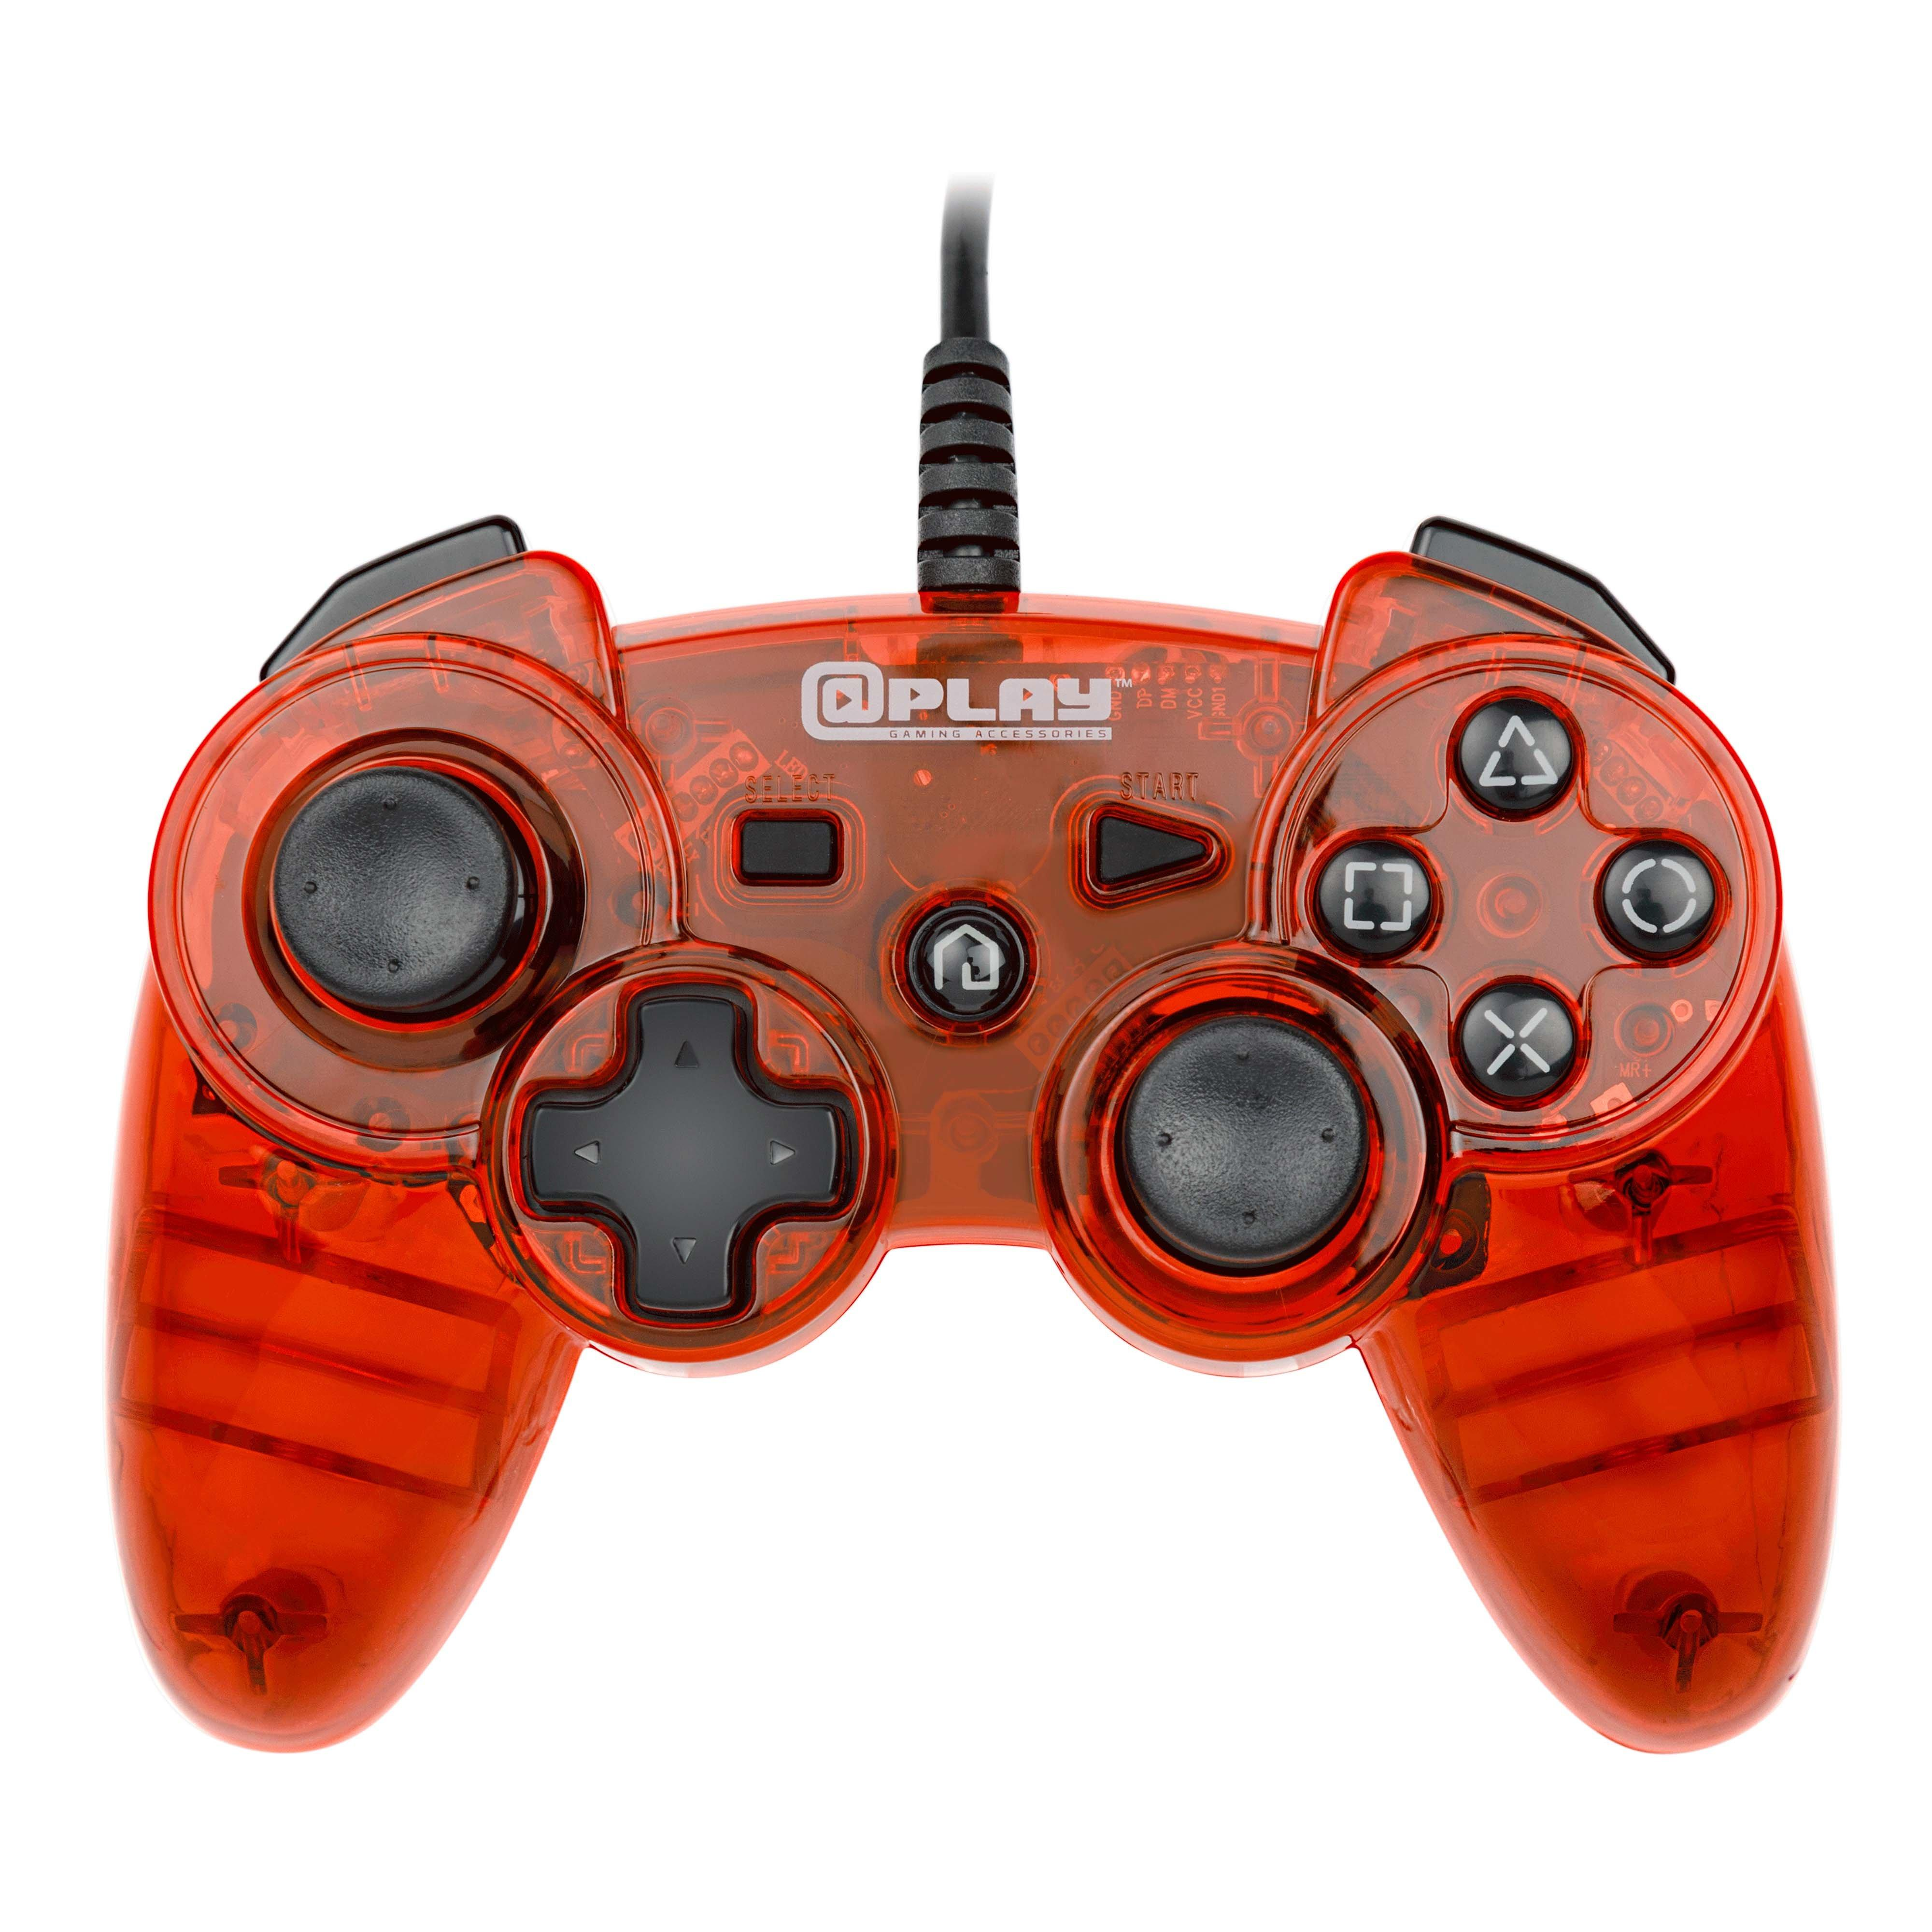 Playstation 3 Wired Controller Playstation 3 Gamestop